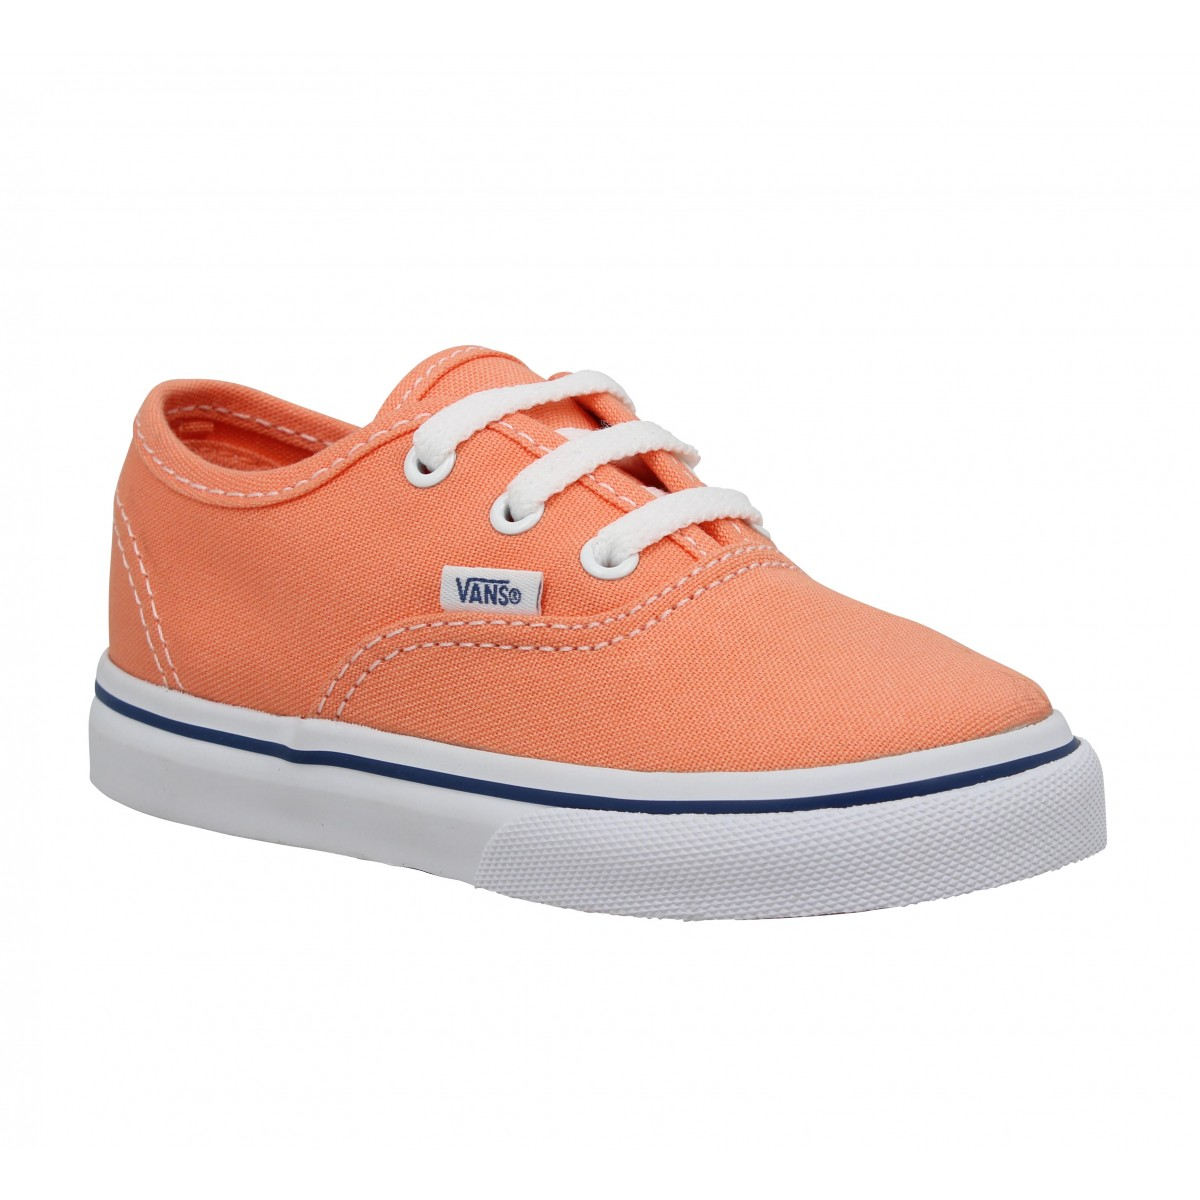 Vans Enfant Authentic Toile -27-melon